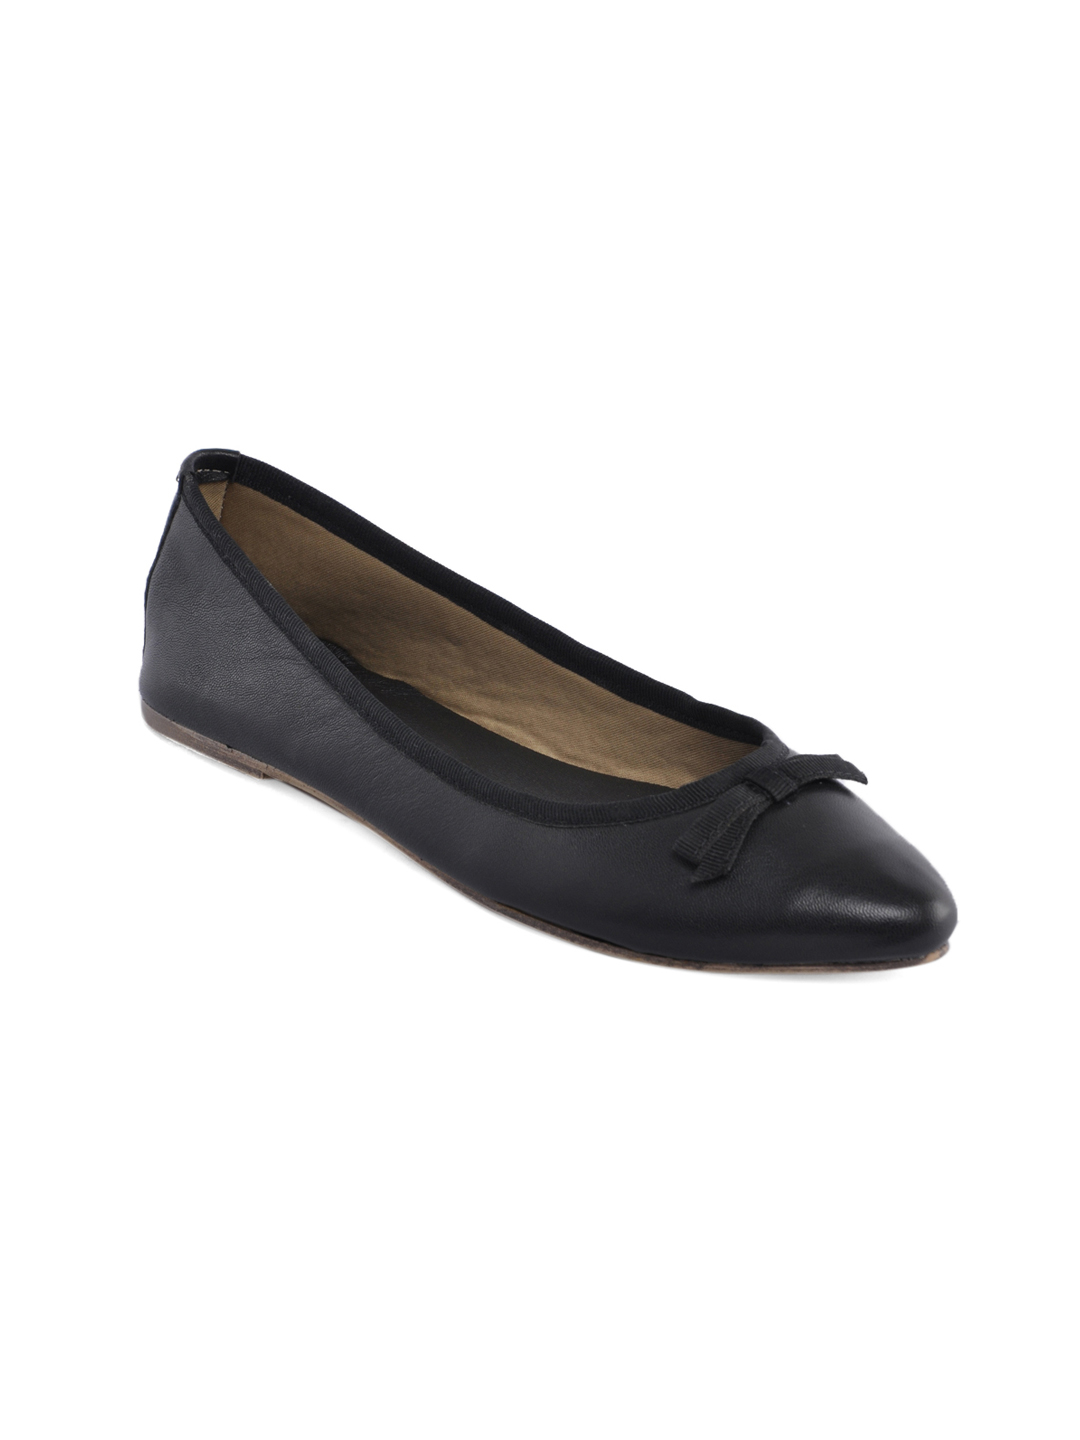 United Colors of Benetton Women Black Shoes